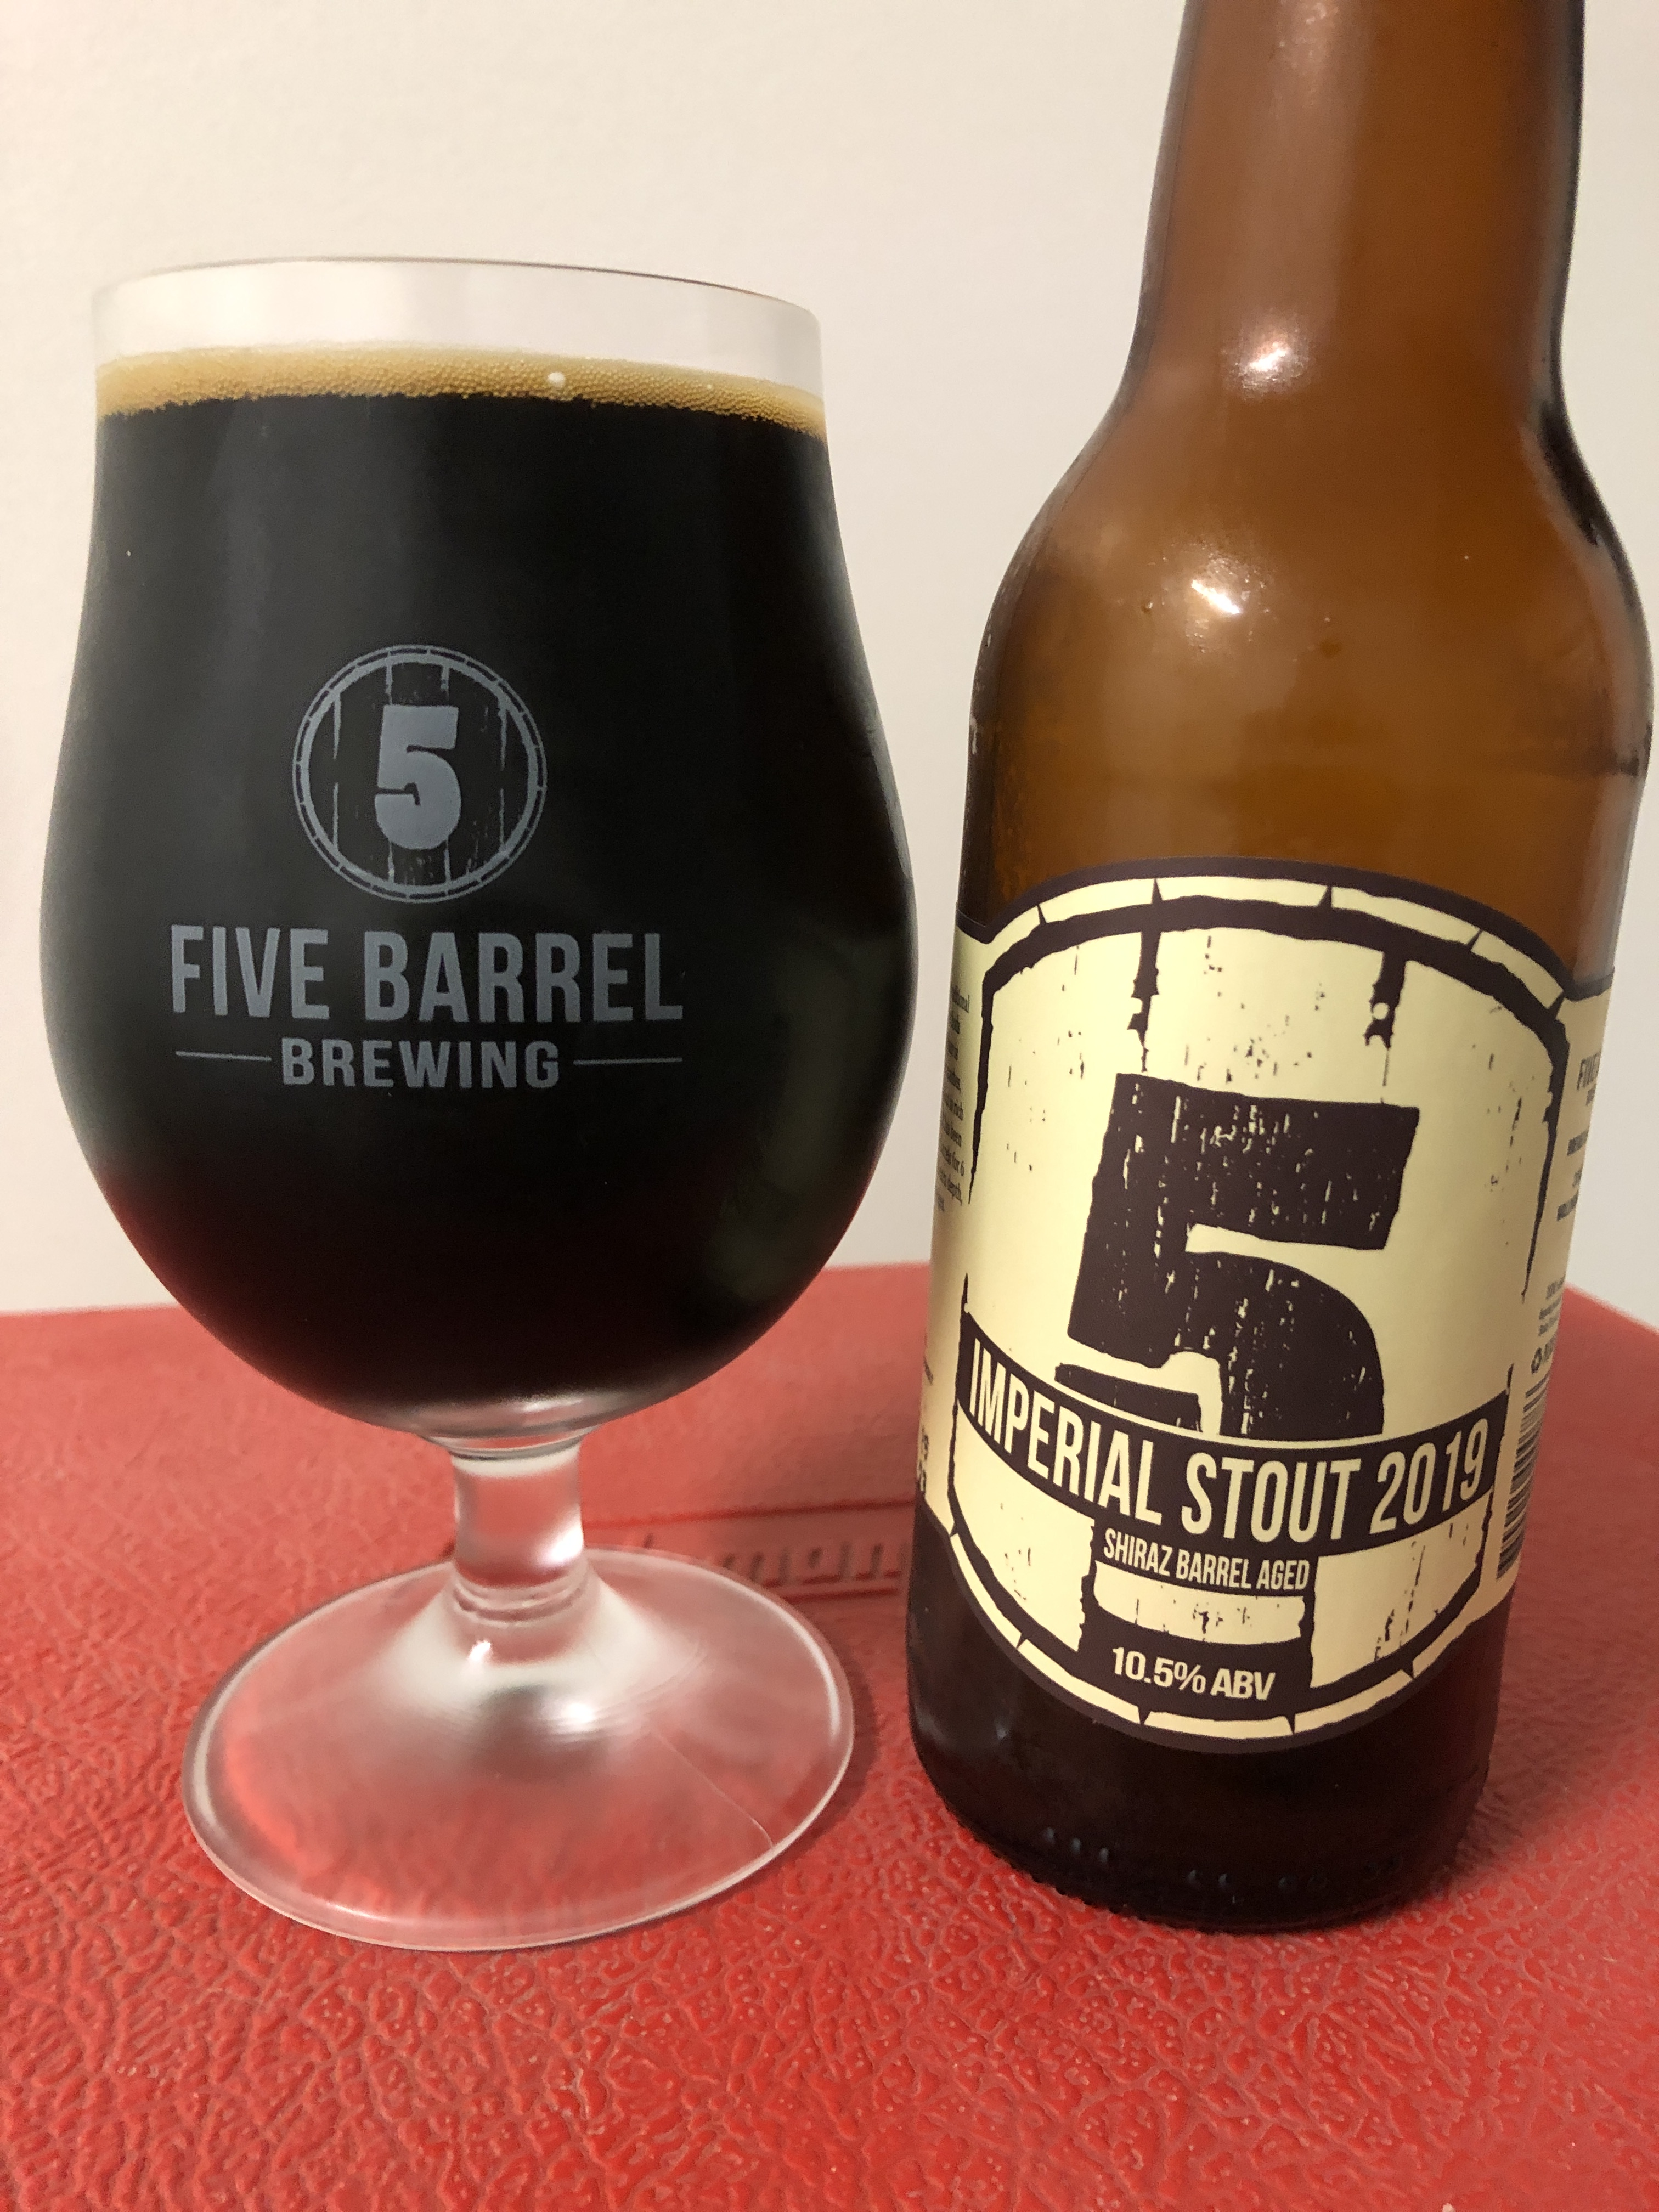 Five Barrel Brewing Imperial Stout 2019